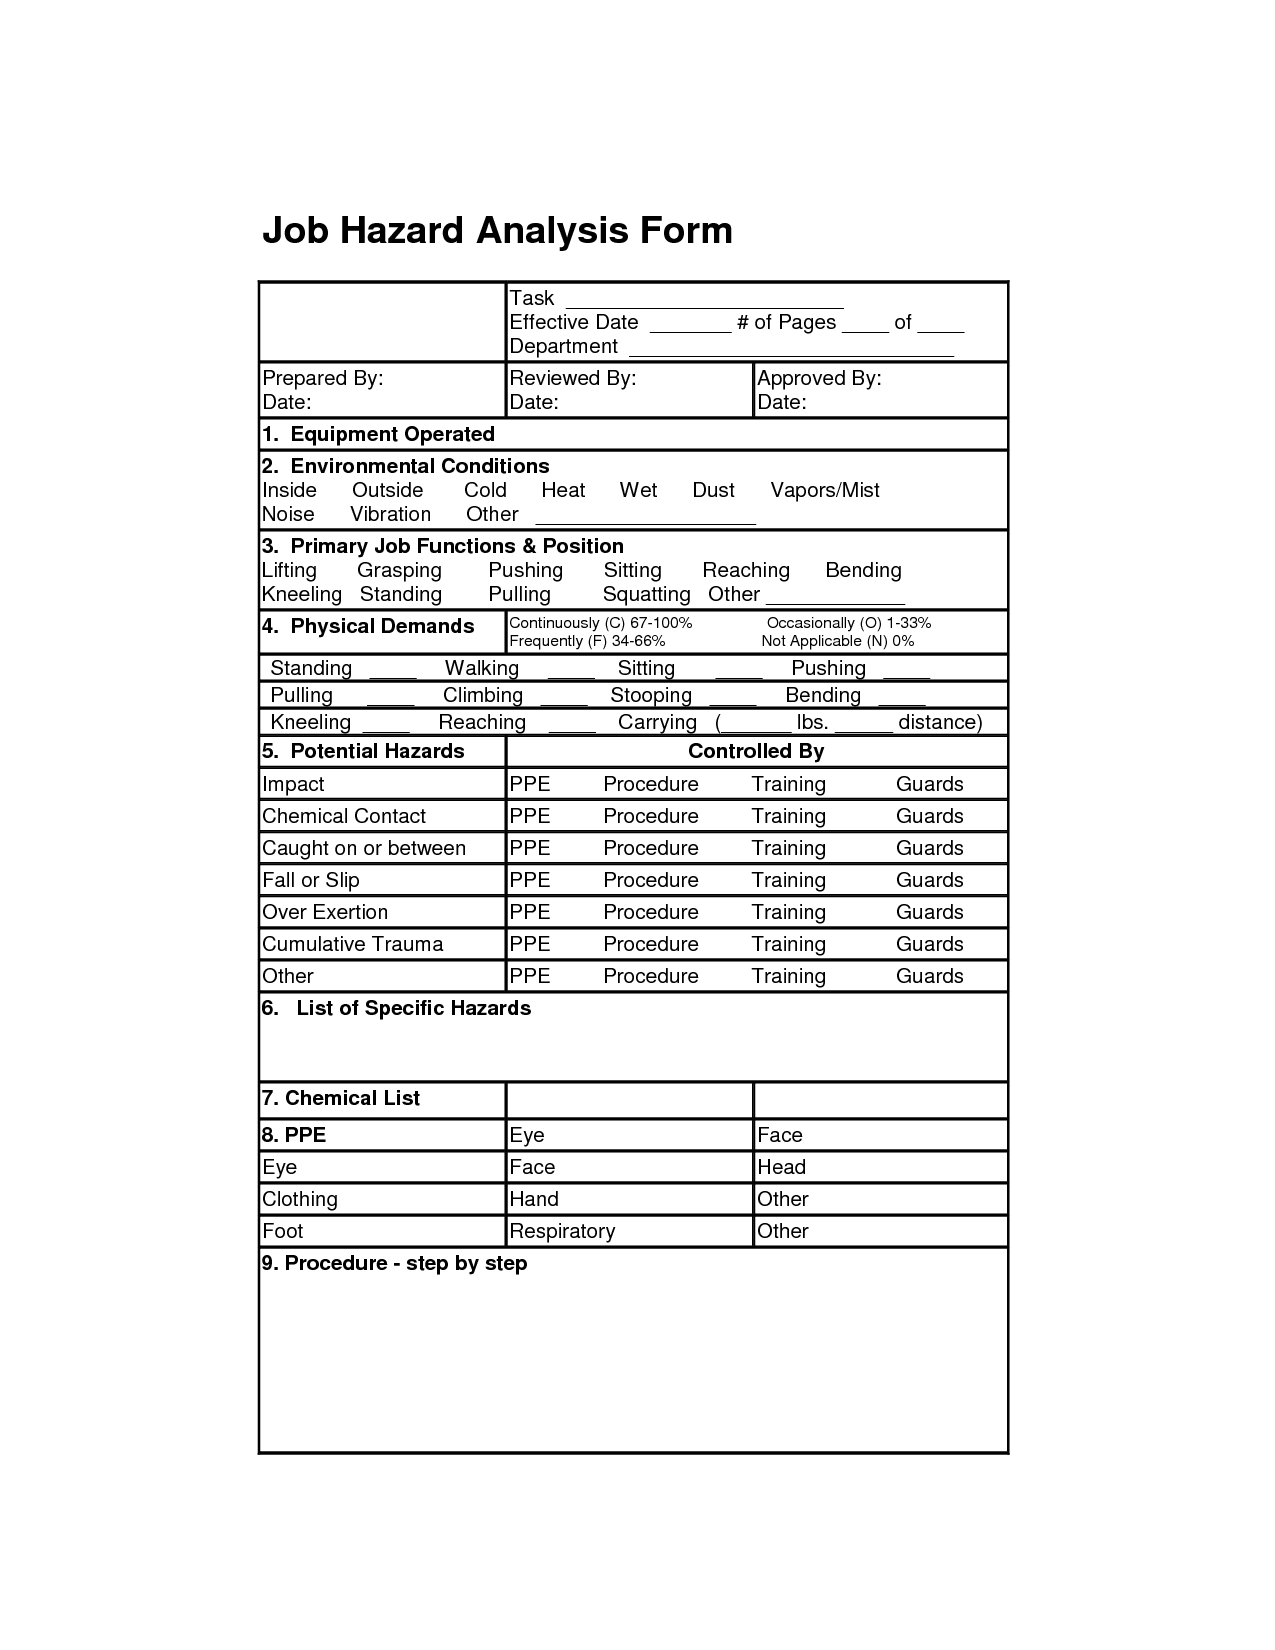 Job hazard analysis form job analysis forms pinterest sample job hazard analysis form survey template report template templates cover template job maxwellsz